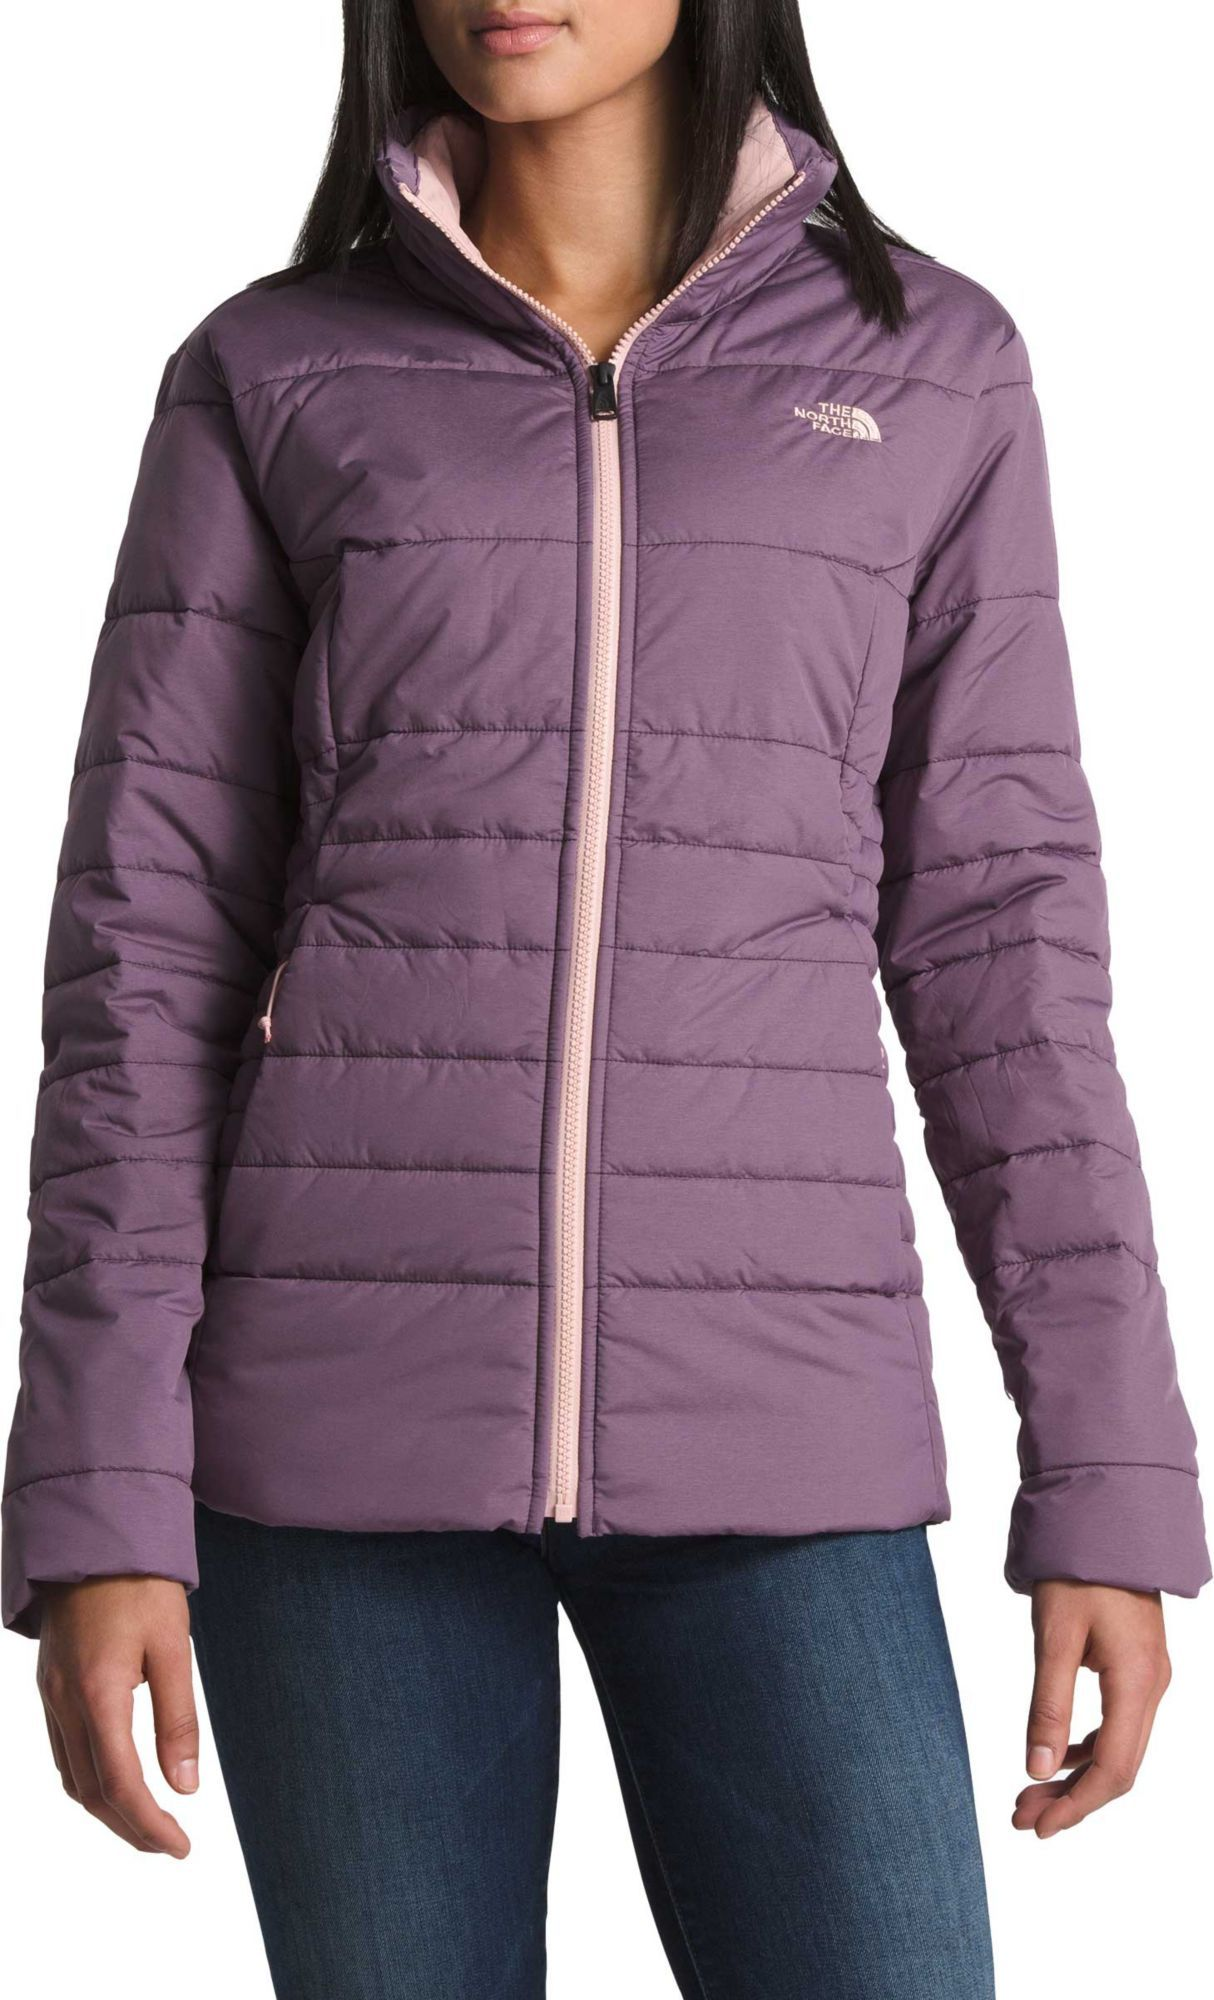 62323188f The North Face Women's Harway Insulated Jacket | Jacket | North face ...